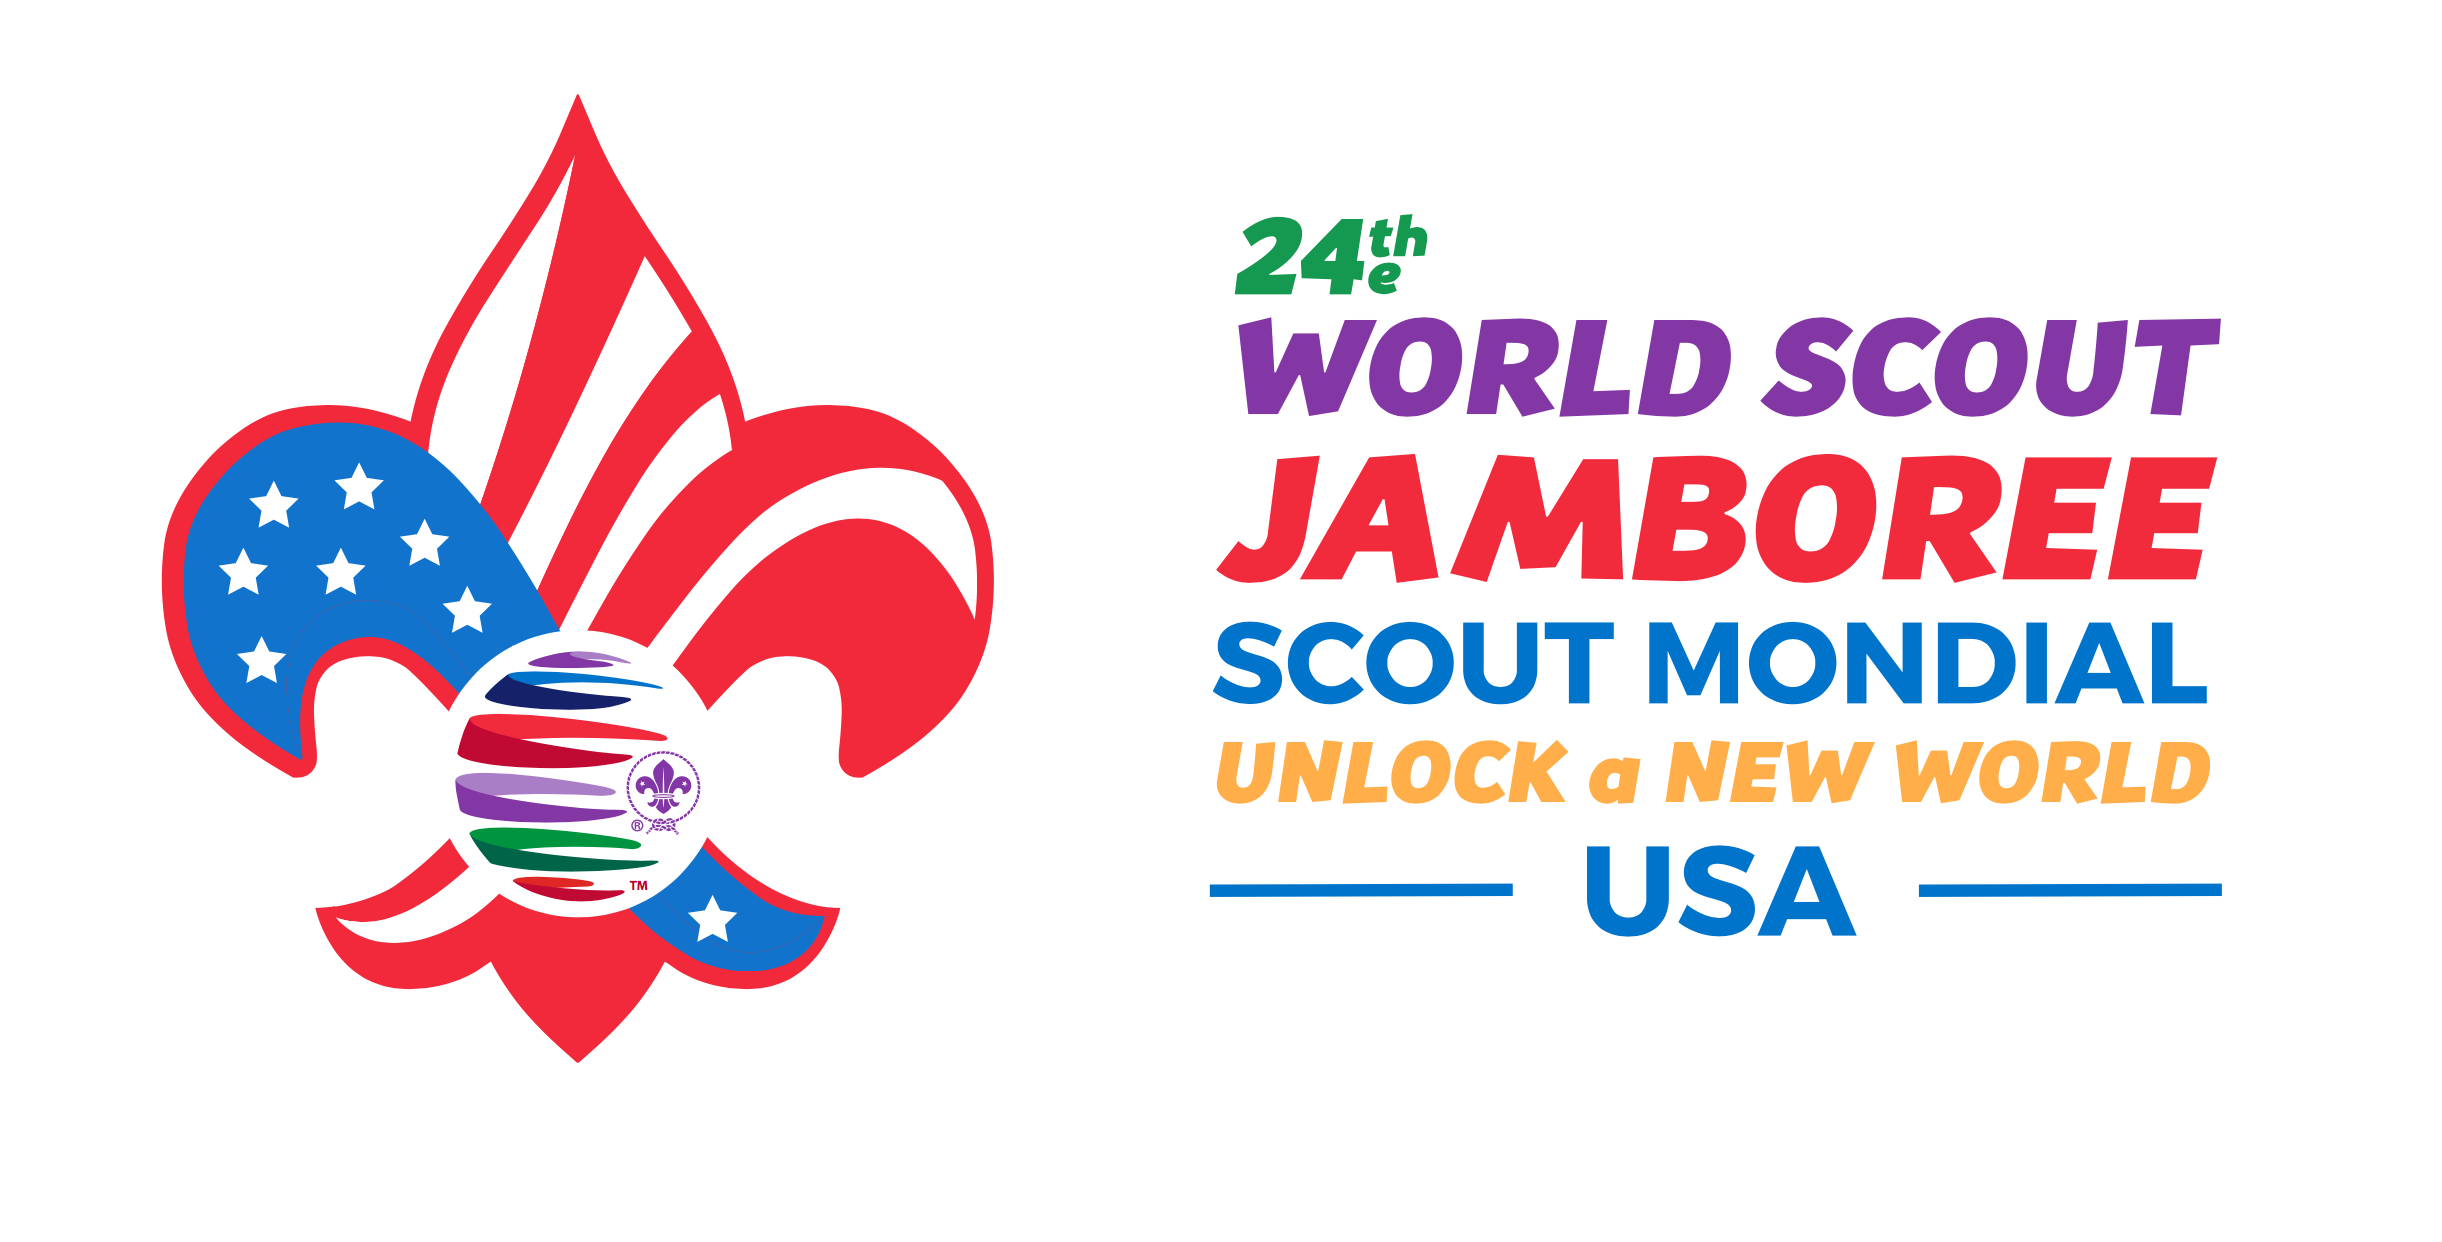 24th World Scout Jamboree 2019 - BSA Contingent